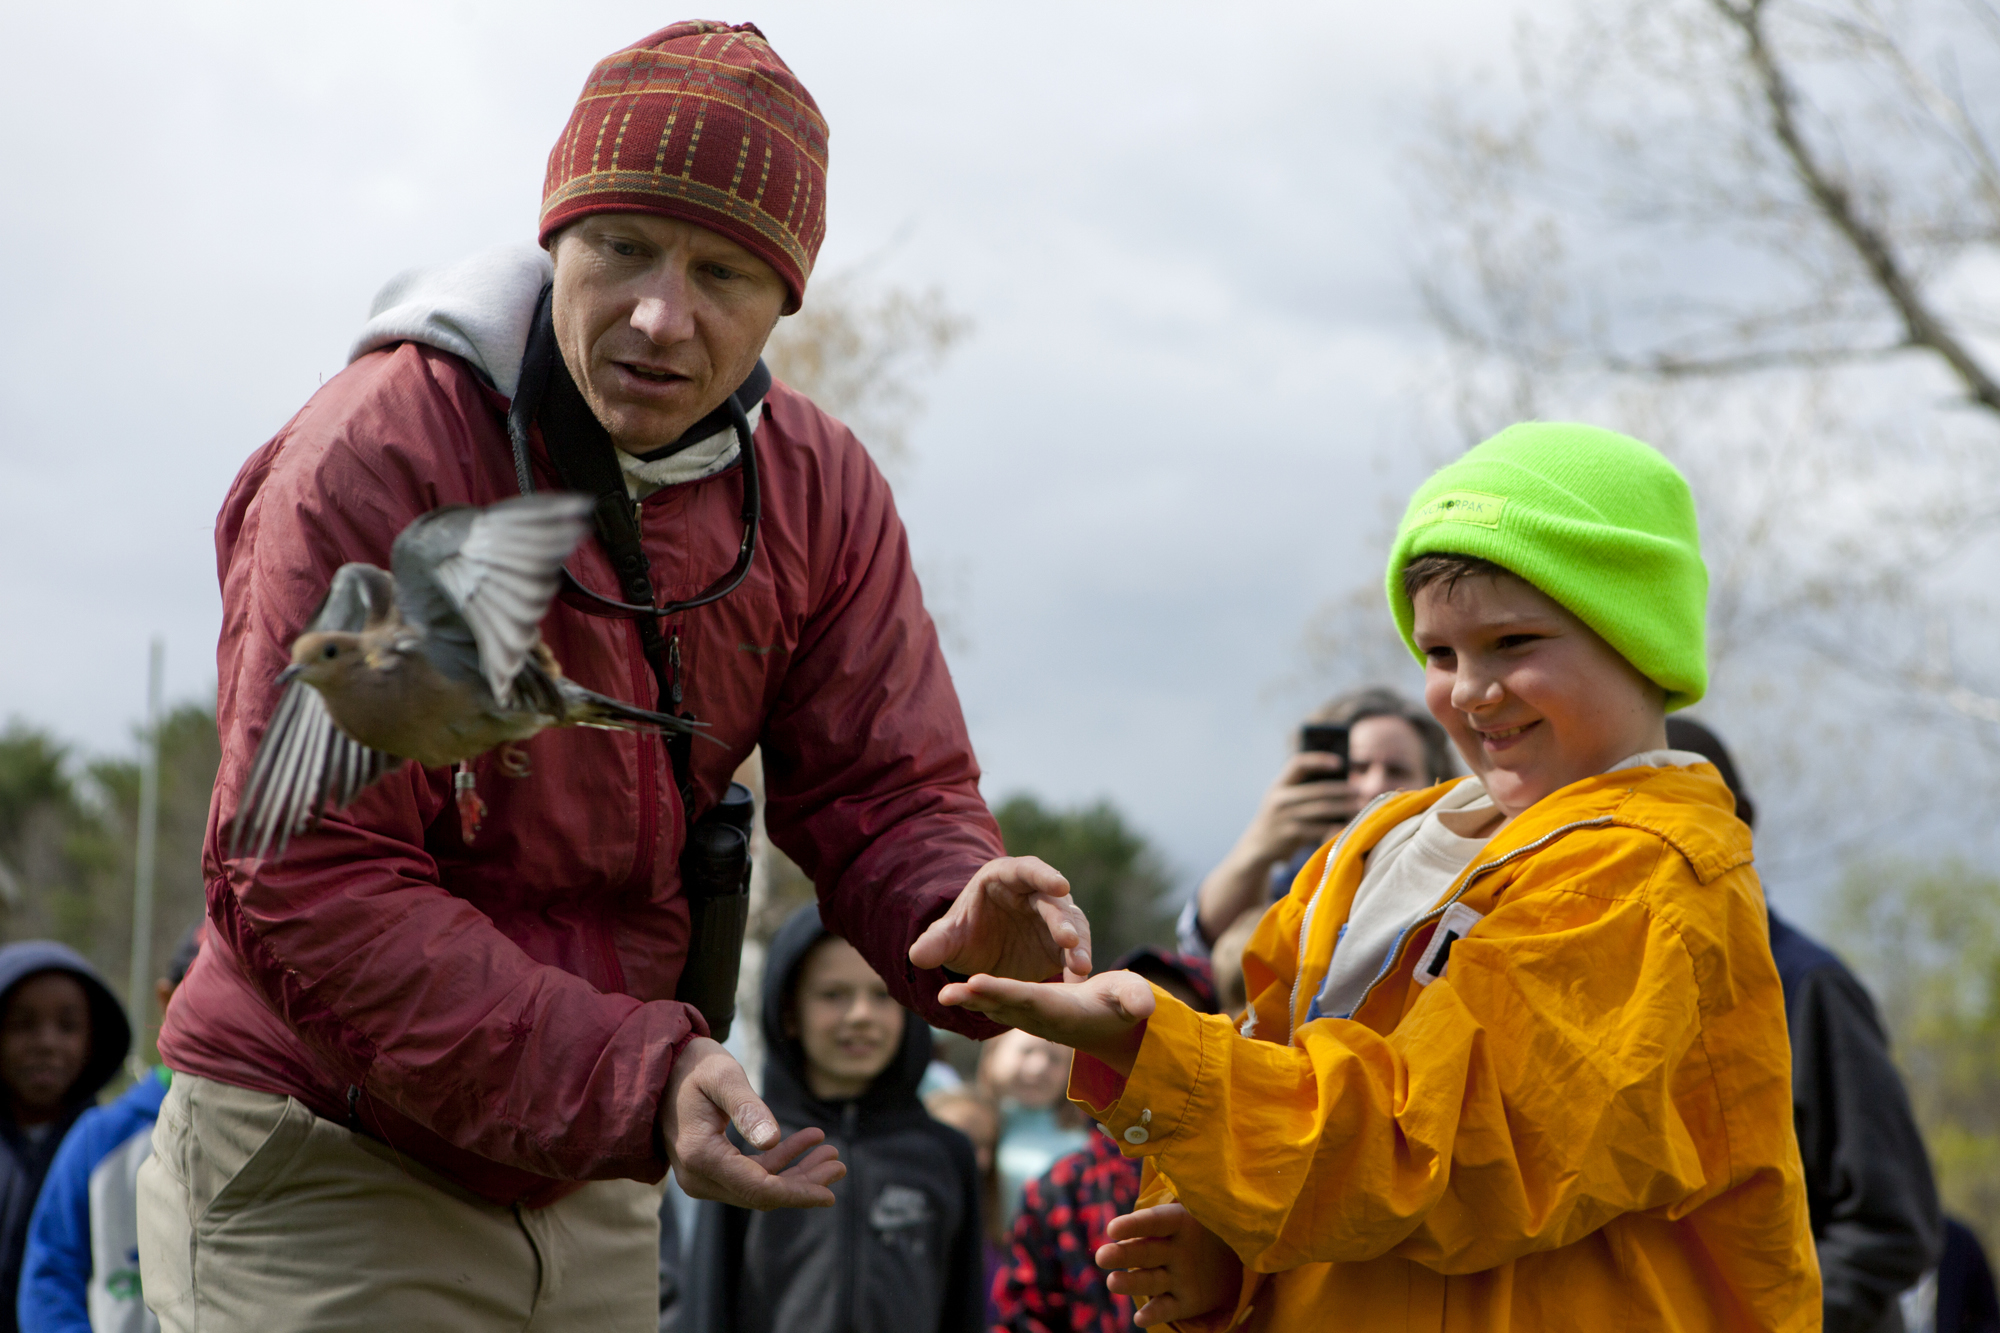 Biodiversity Research Institute's Patrick Keenan, and a Hall Elementary student release a Mourning Dove after it was banded and recorded by BRI volunteers in Falmouth, Maine on May 9.